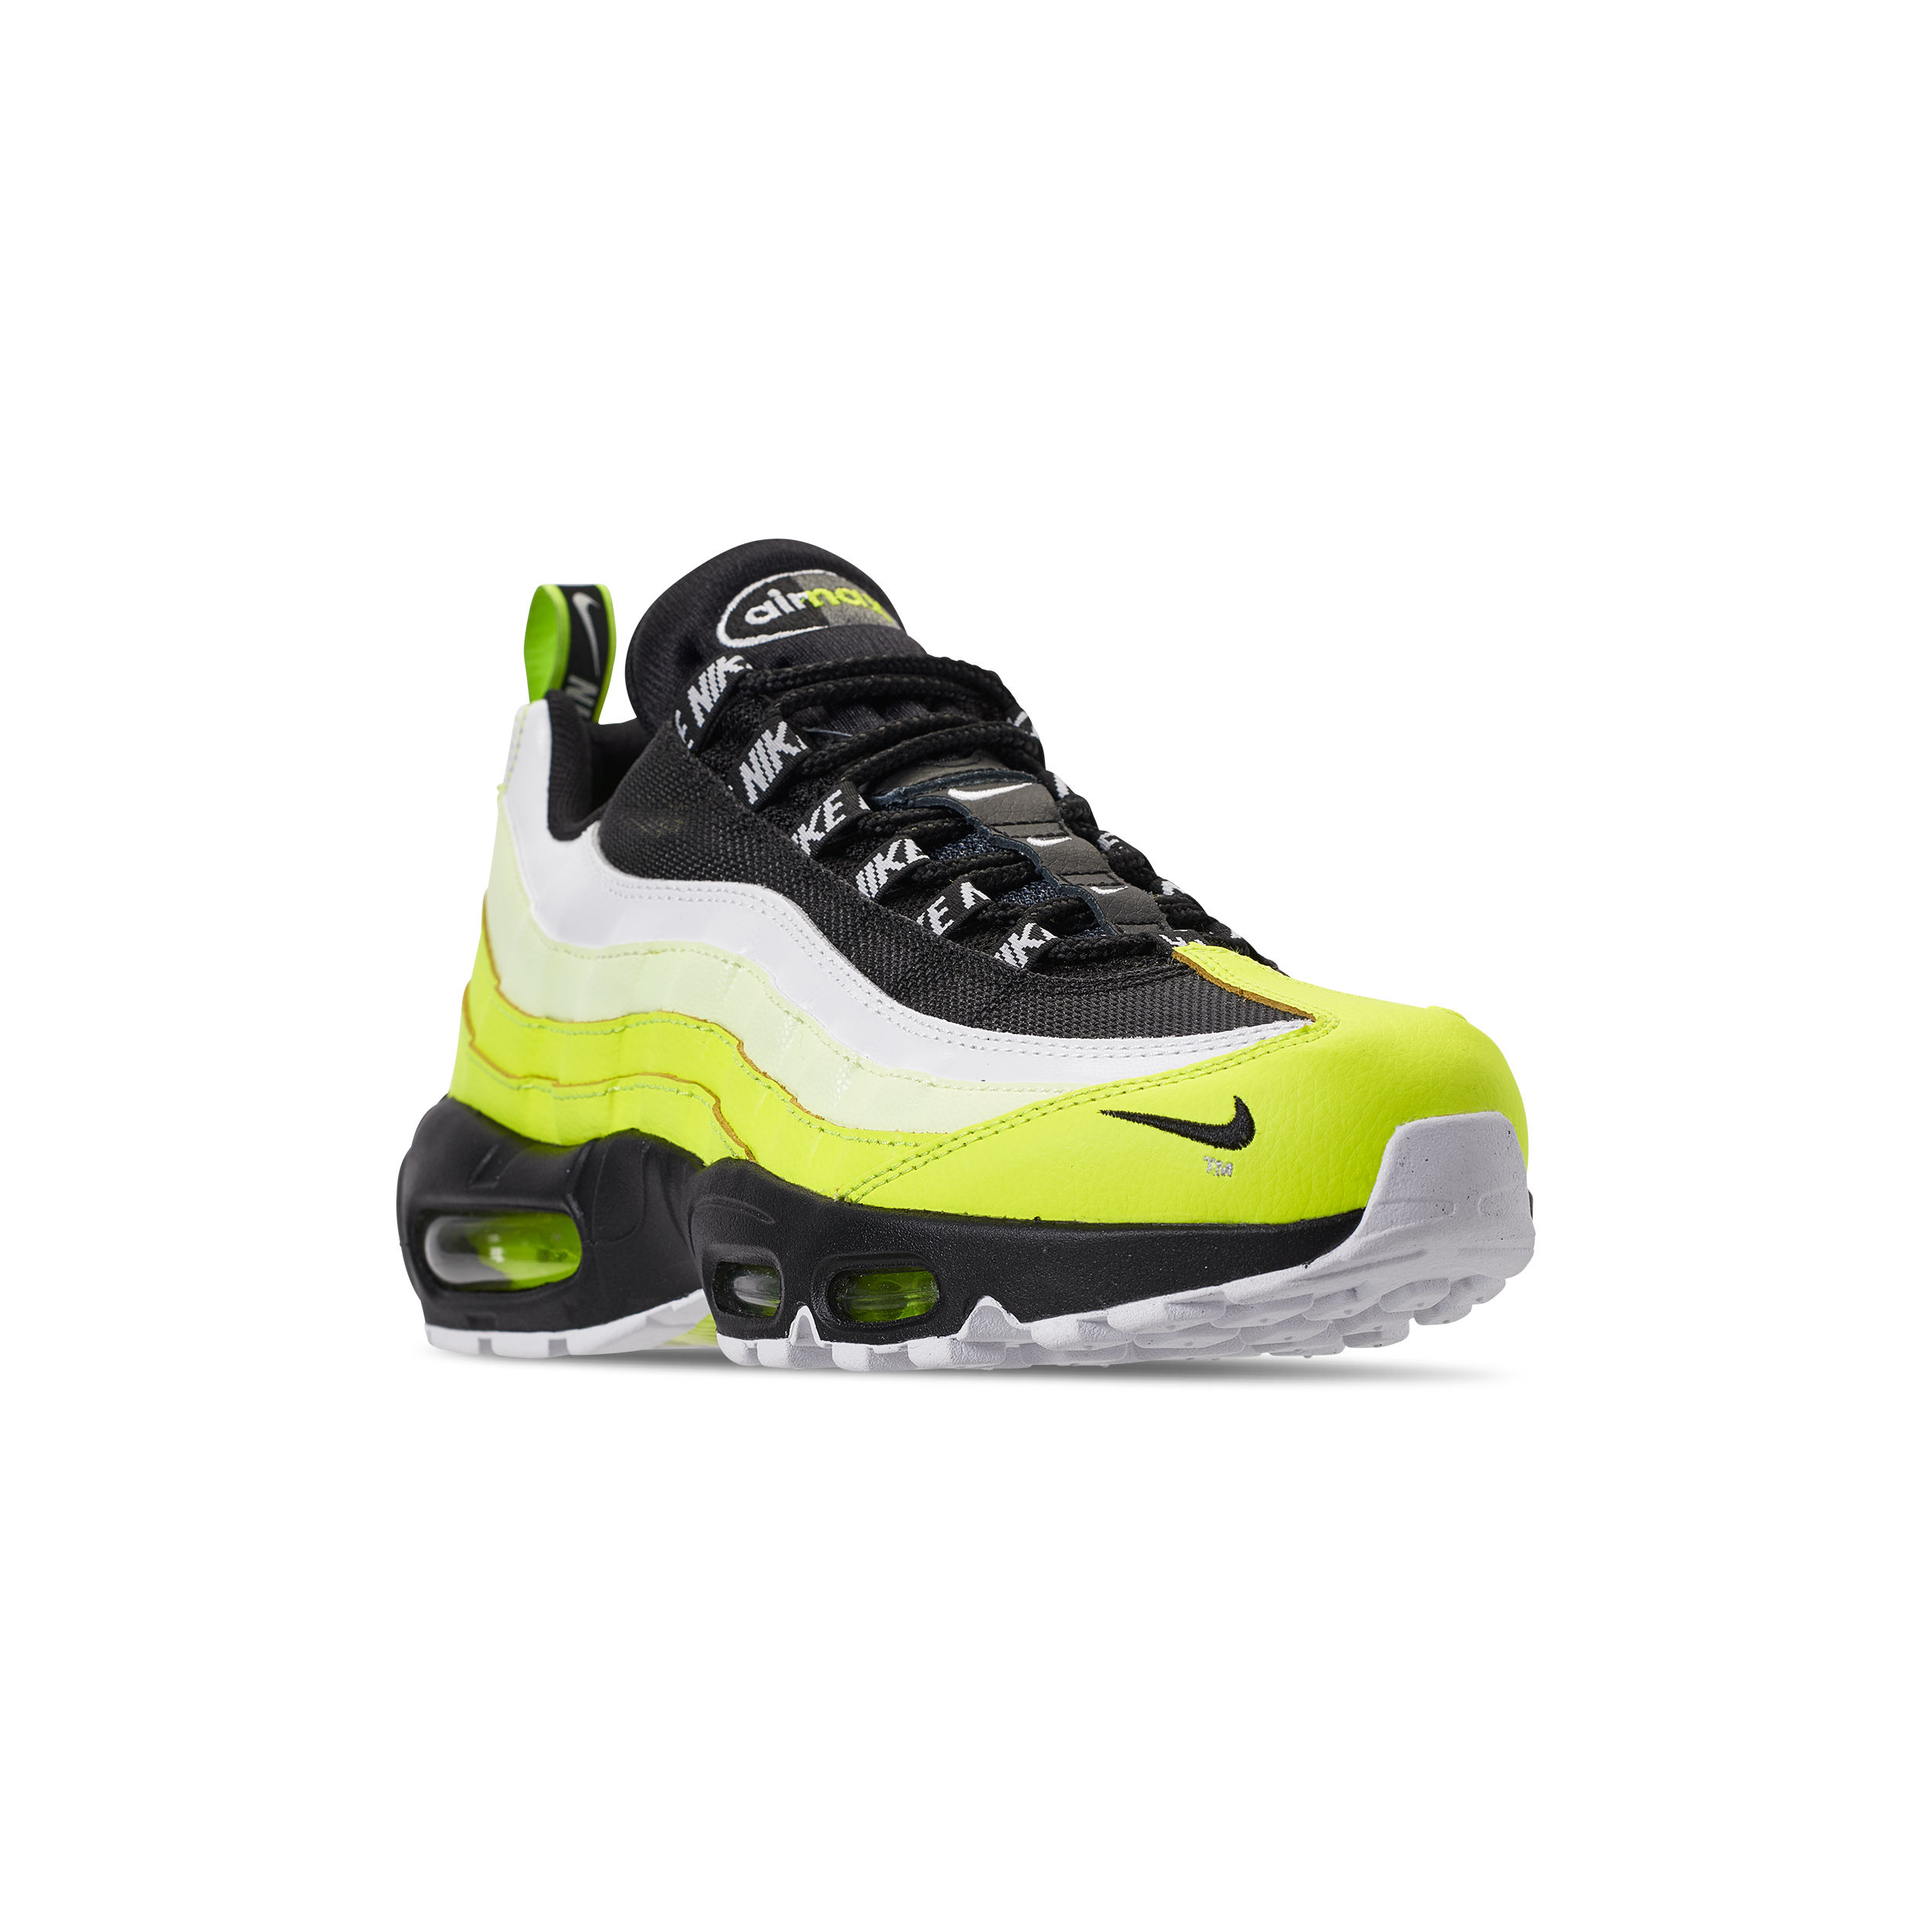 2a99e0391f5 NIKE AIR MAX 95 PREMIUM VOLT   BLACK-VOLT GLOW-BARELY VOLT OFF WHITE ...